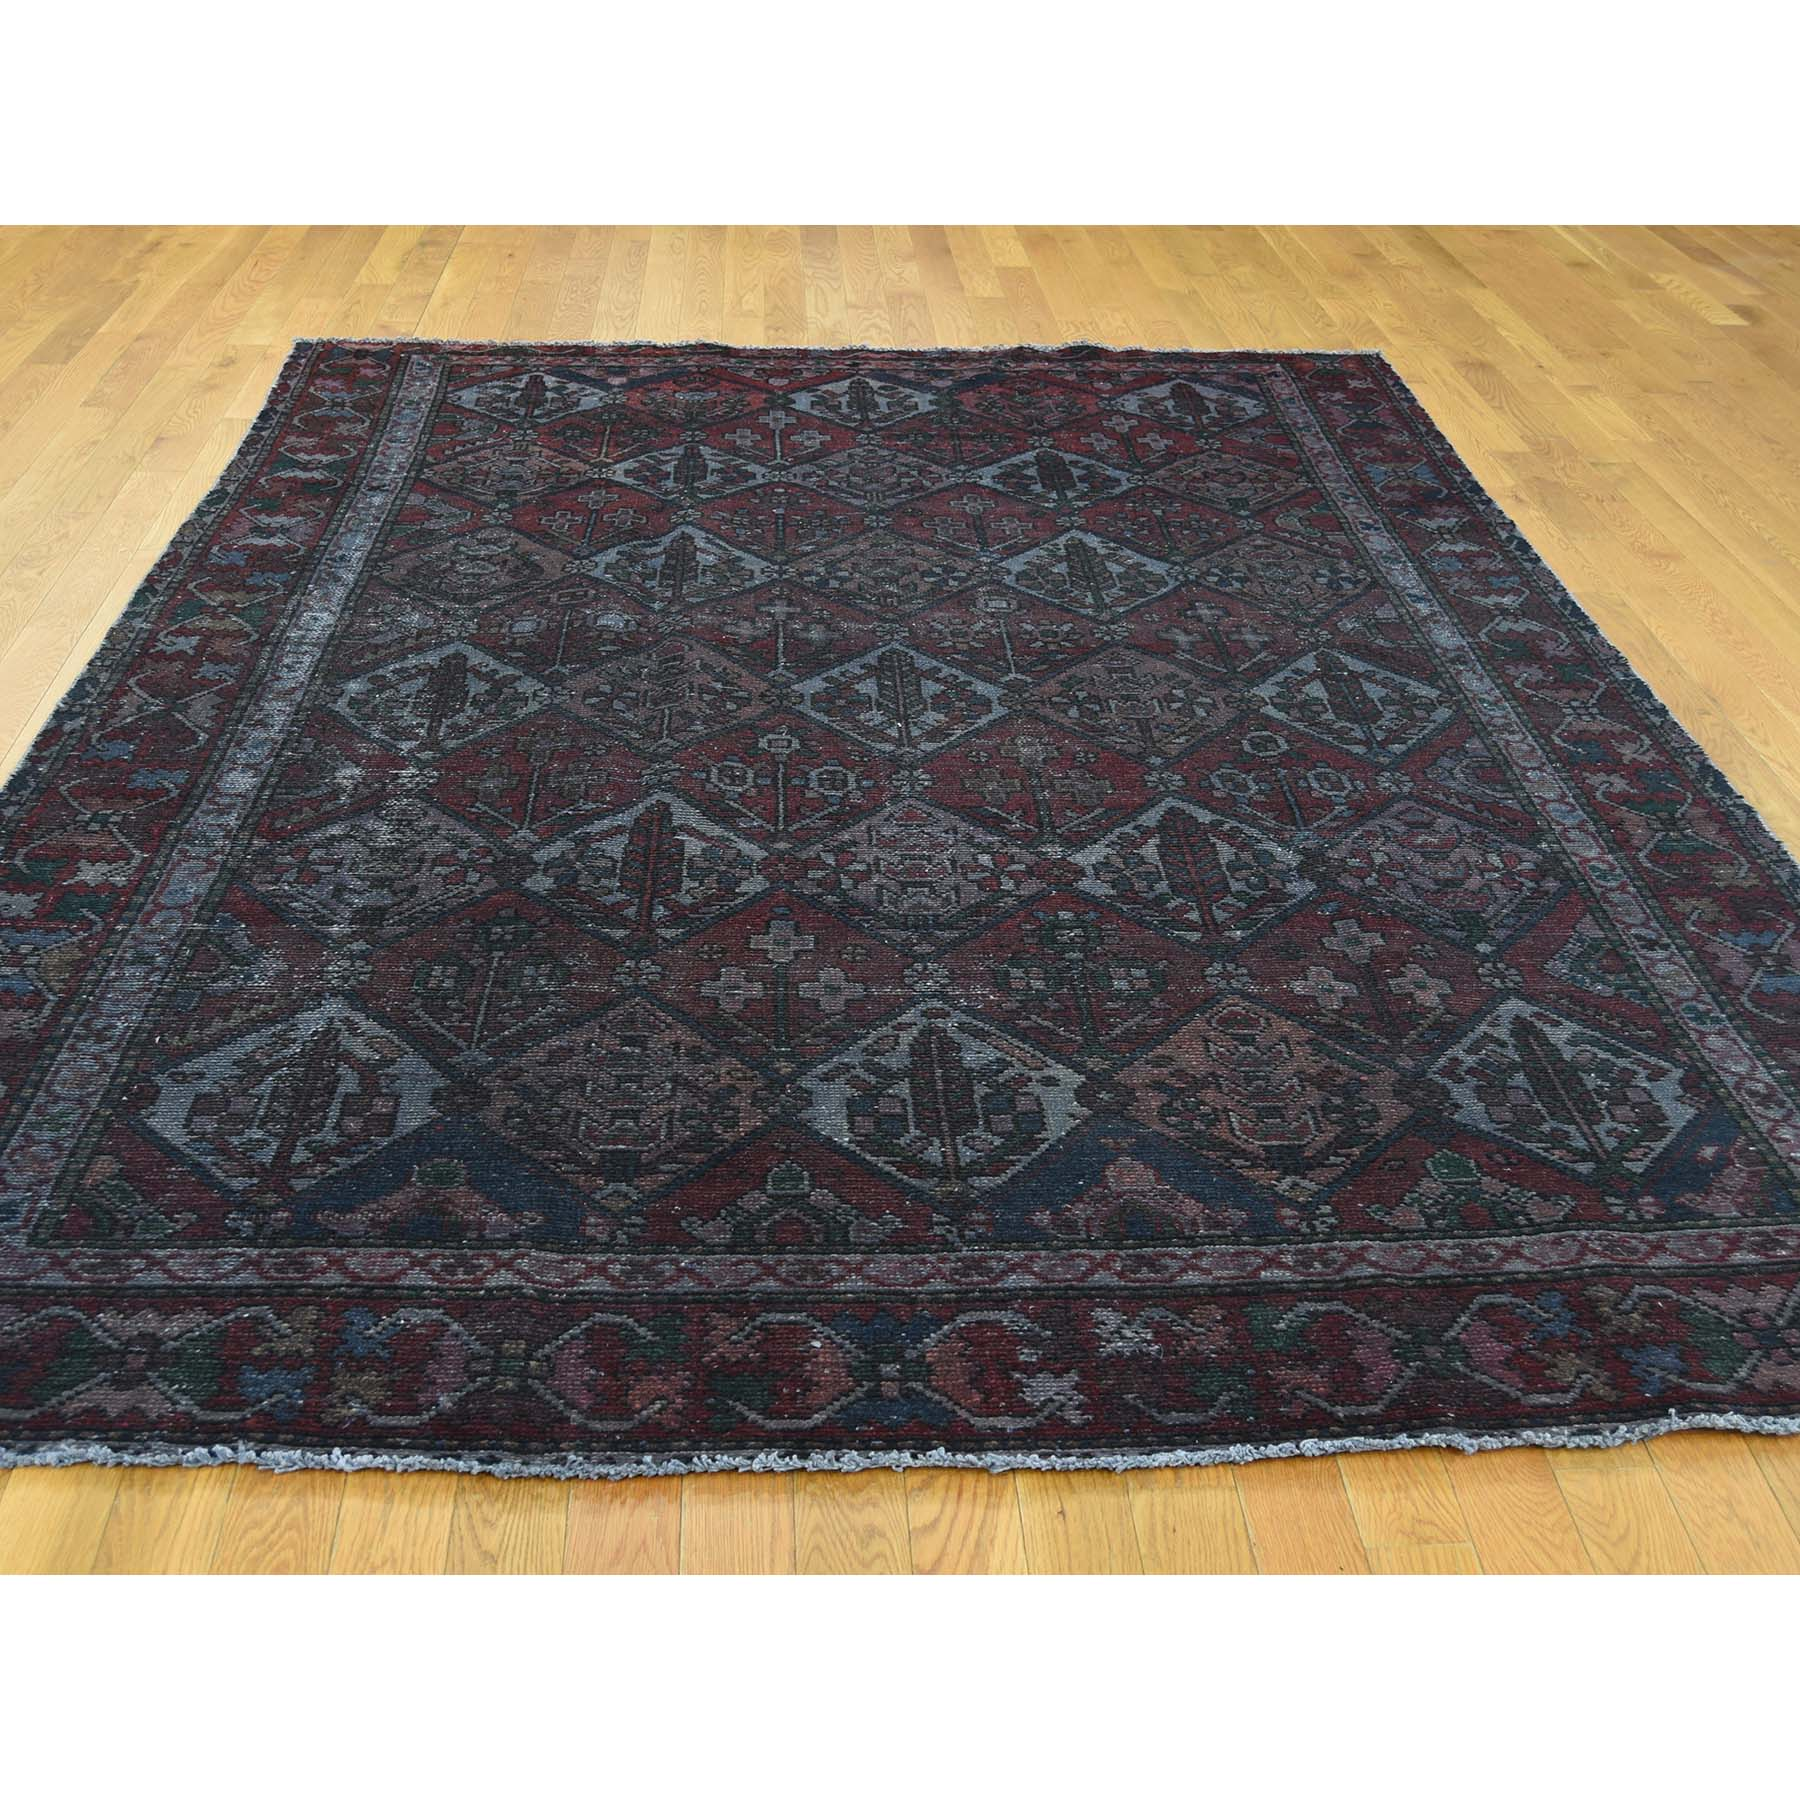 7-3 x9-5  Hand Knotted Vintage Overdyed Persian Bakhtiari Garden Design Rug